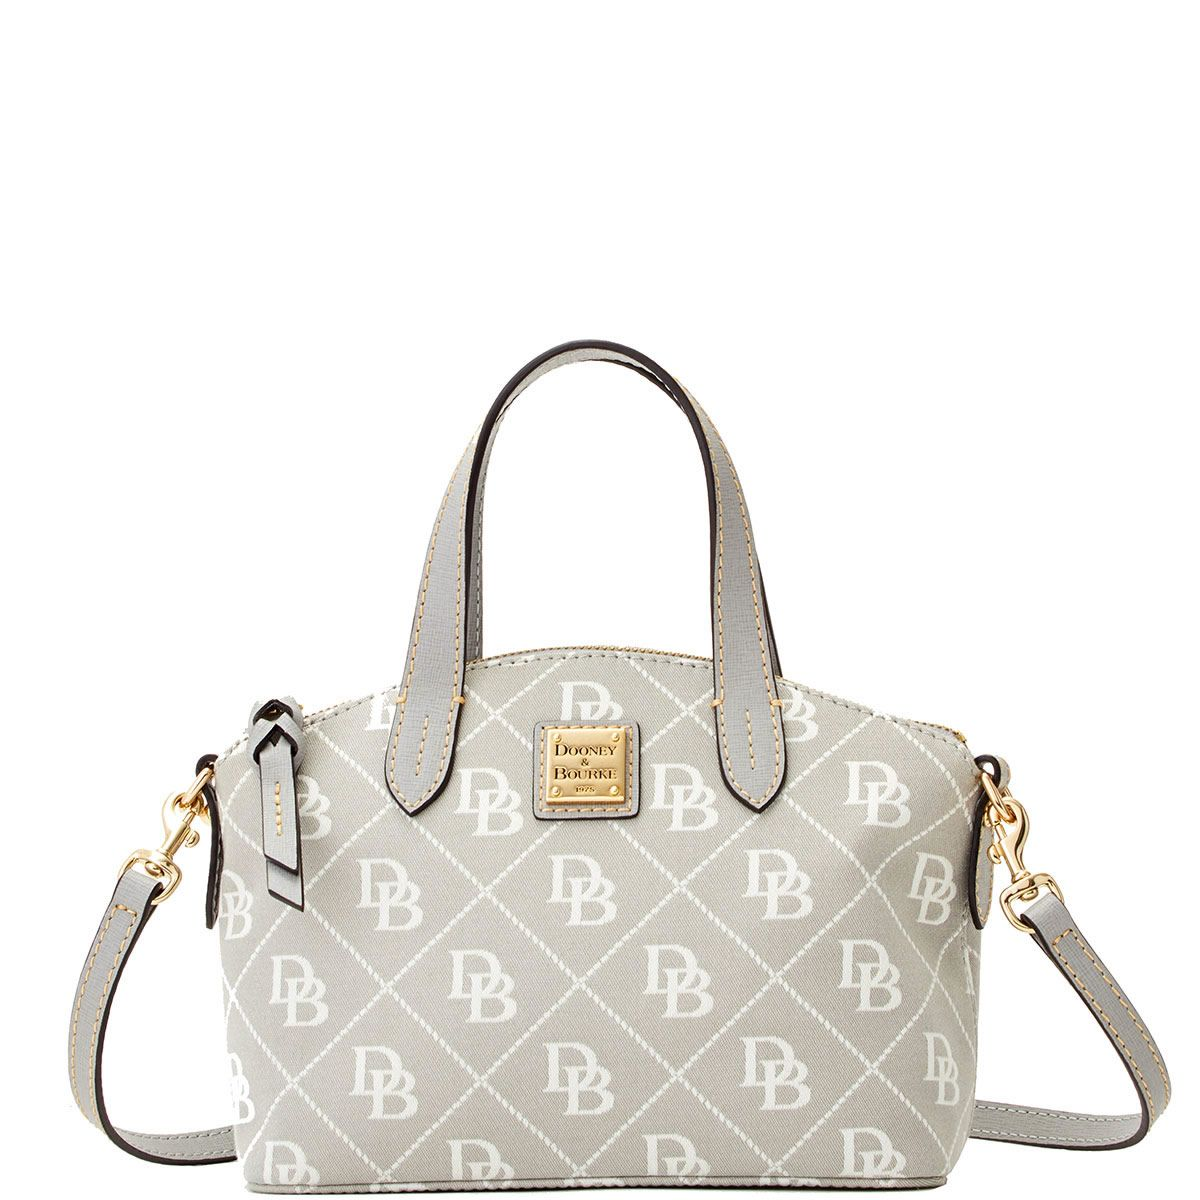 bd6fcc3869d1 Clearance Closeout Dooney and Bourke Handbags - Macy s